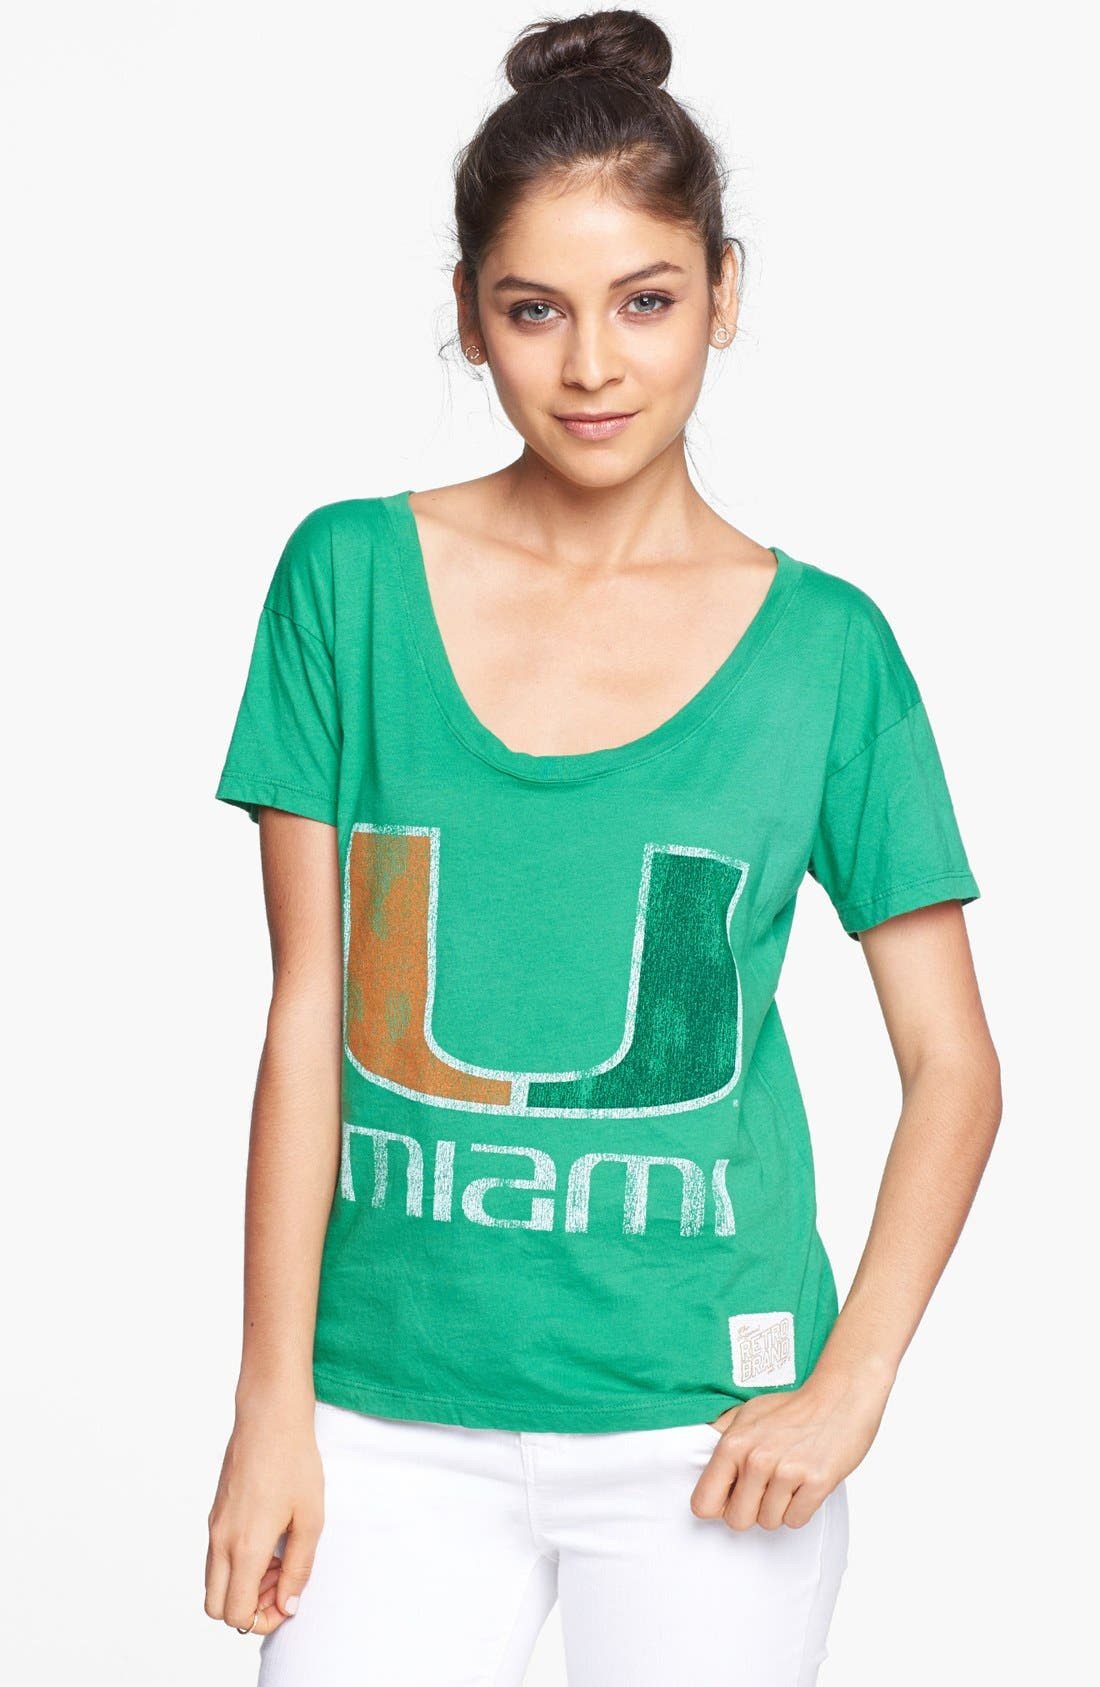 Alternate Image 1 Selected - Retro Brand 'University of Miami Hurricanes' Graphic Tee (Juniors)